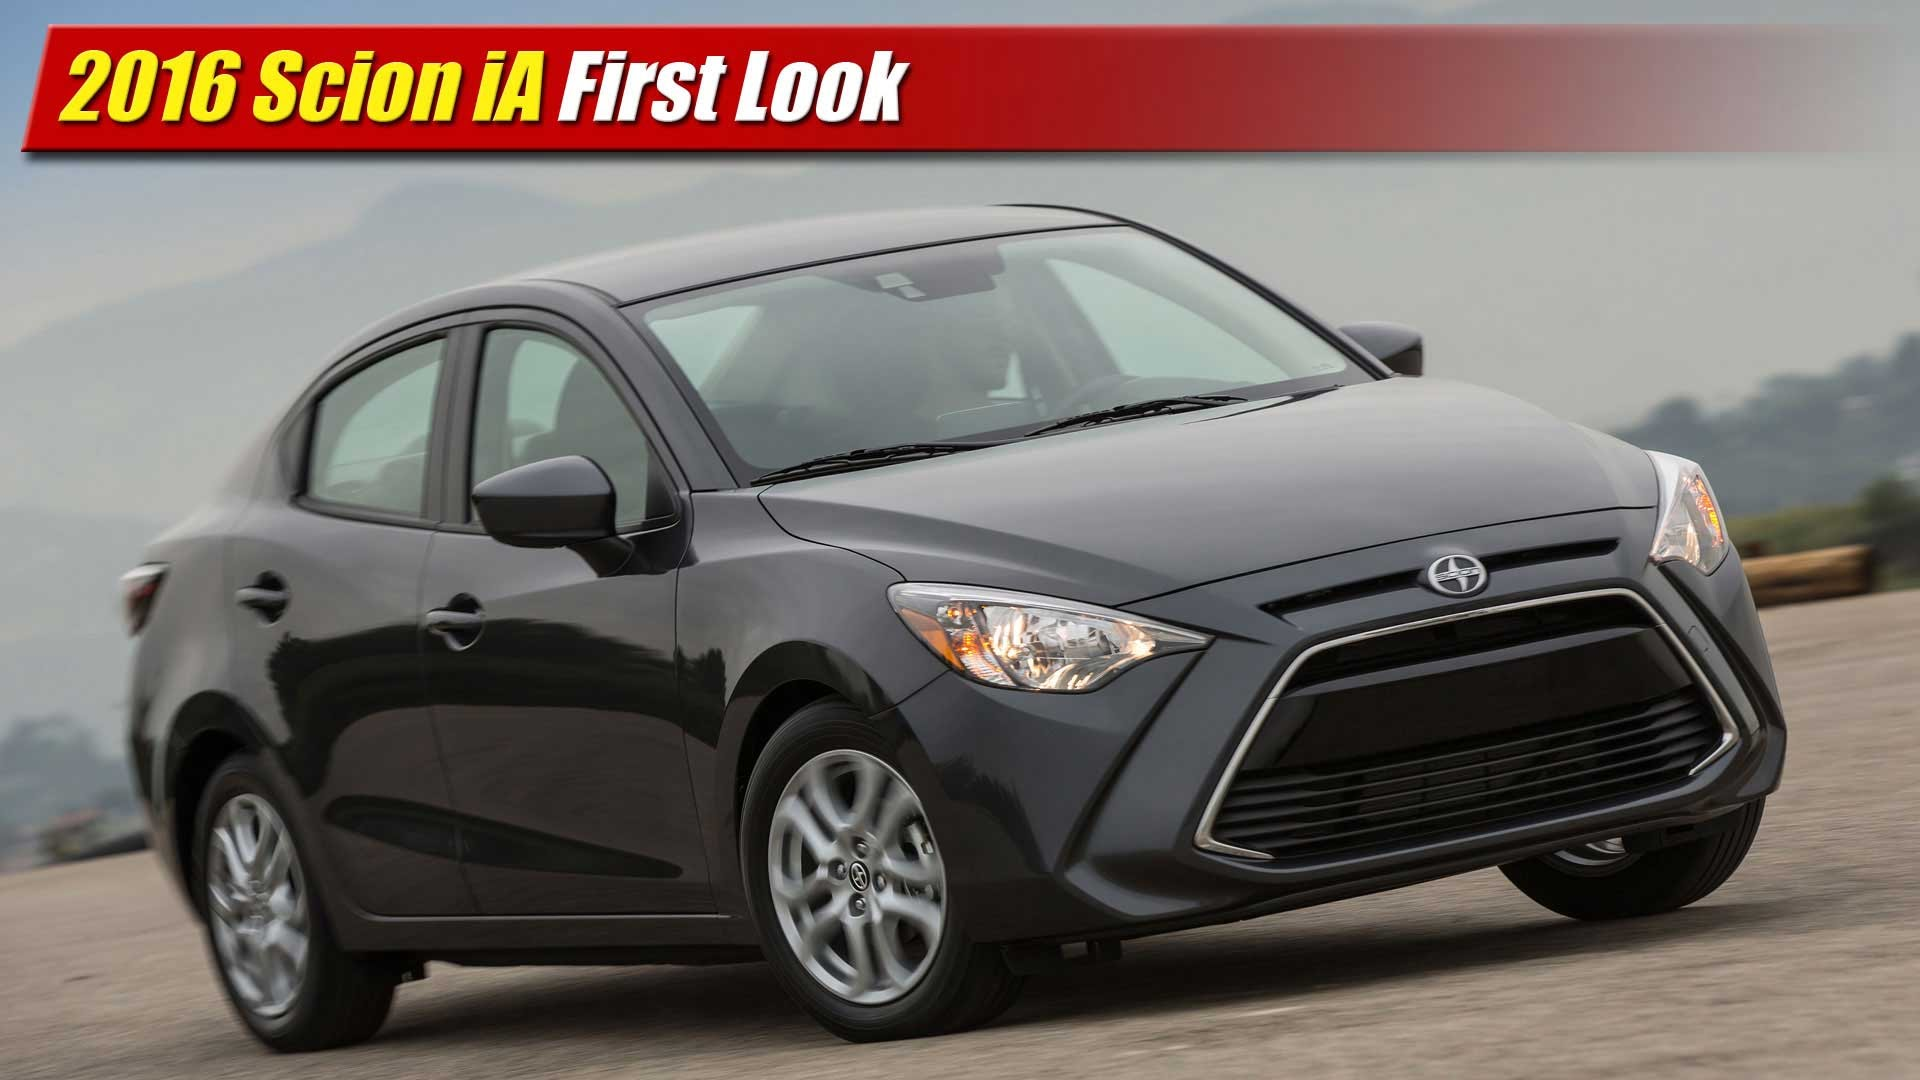 First Look: 2016 Scion iA